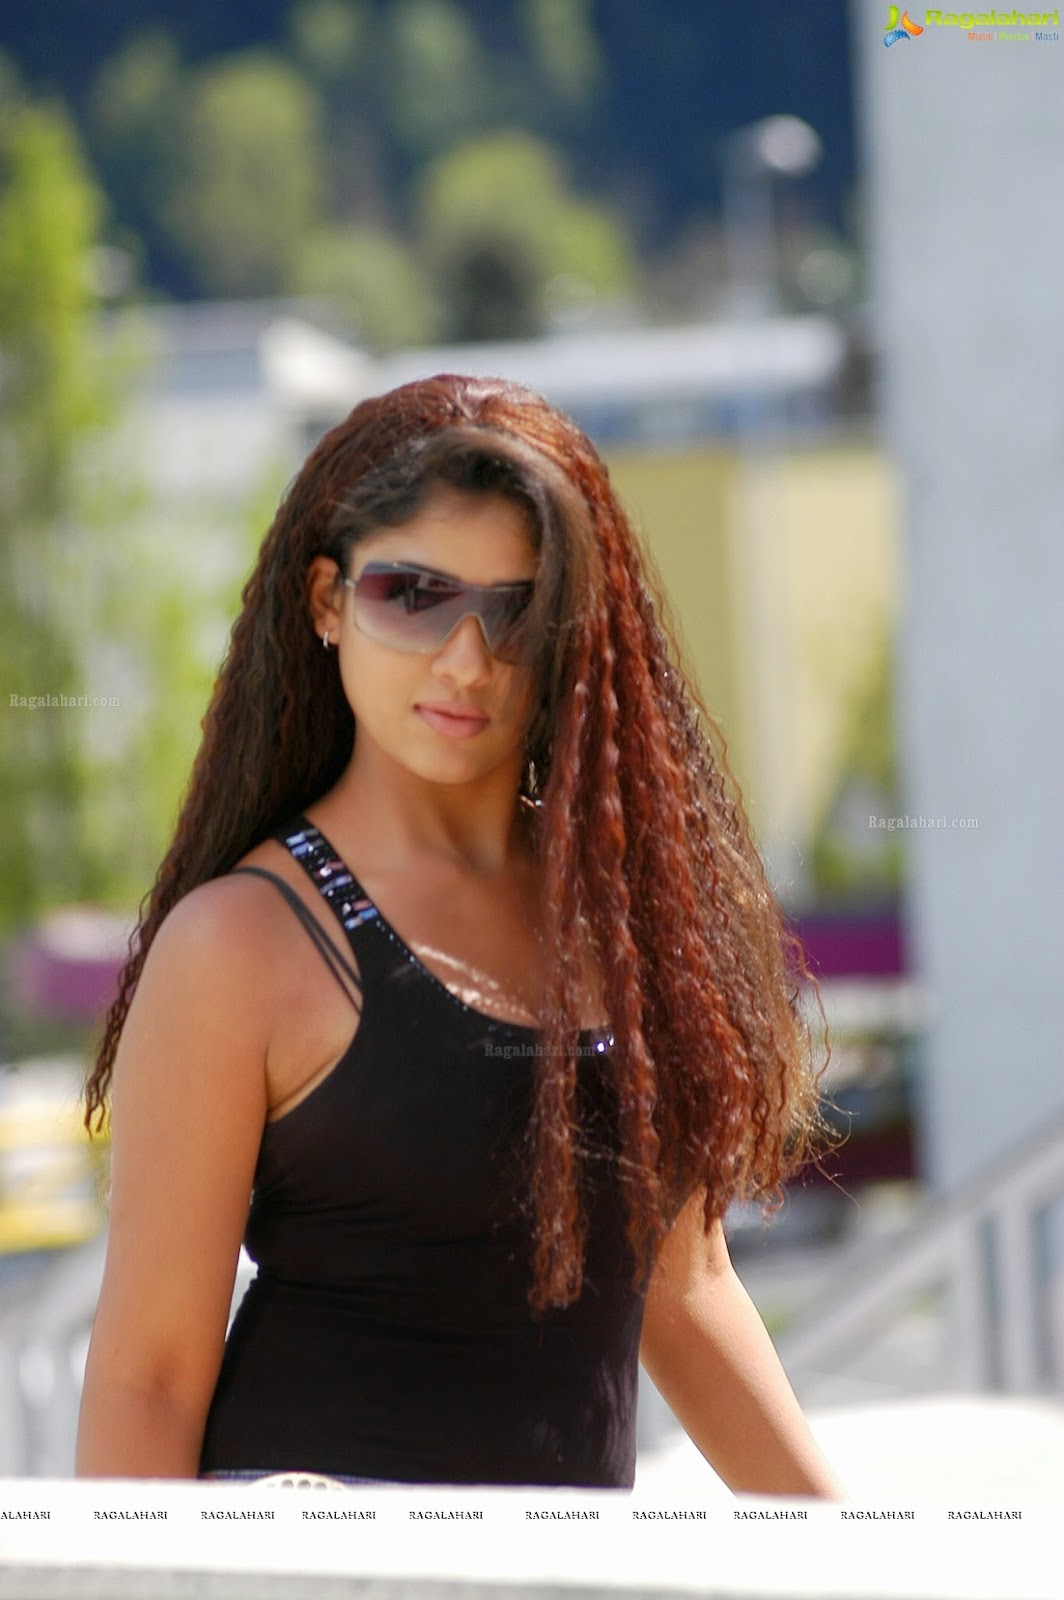 Nayanthara Hot In Black Bra Hd Images - Glamex-8588